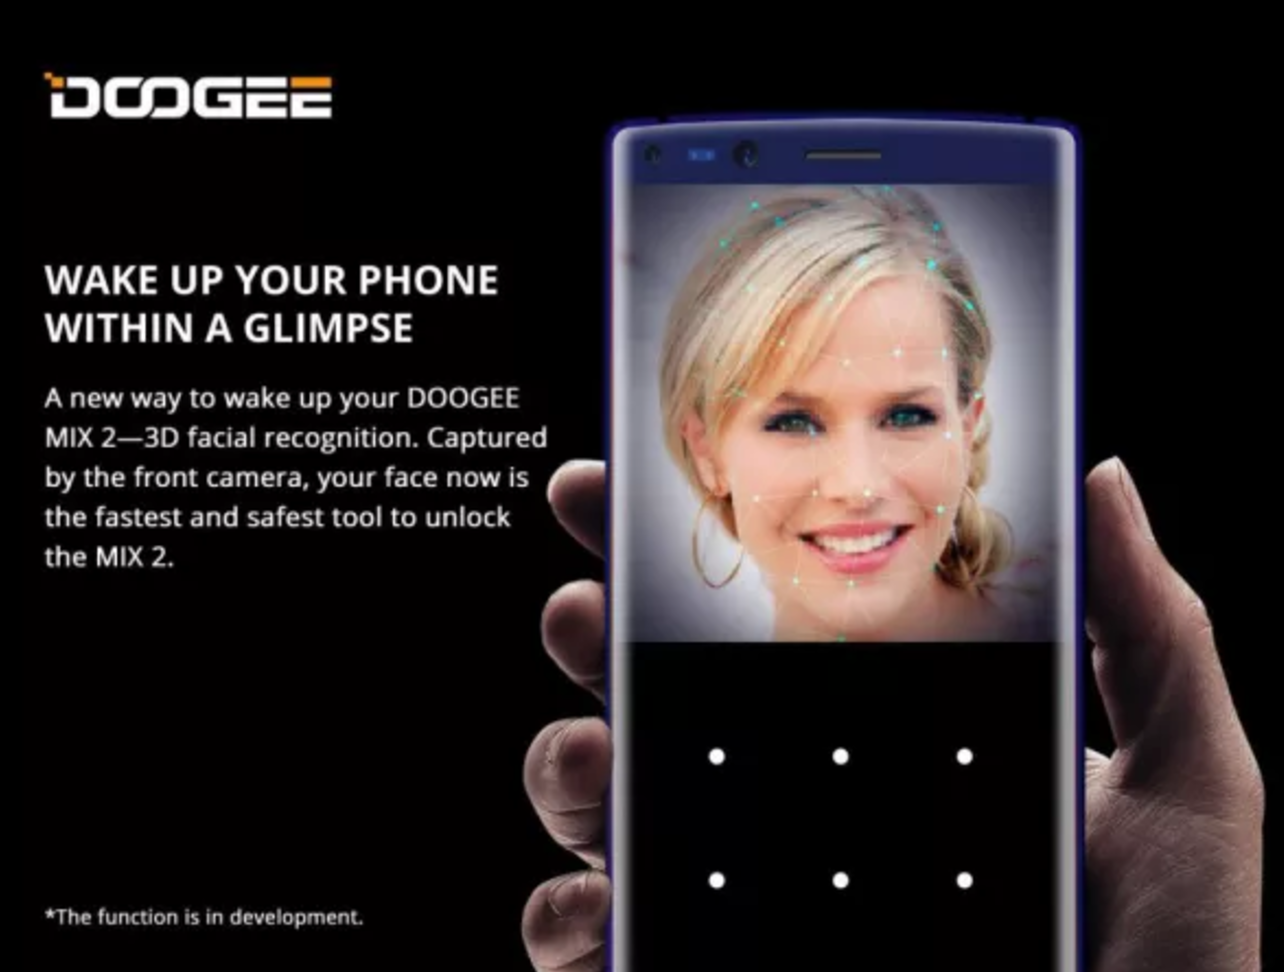 According To New Details Revealed Today The DOOGEE Mix 2 Will Support A Similar Face Recognition ID System As IPhone X Following